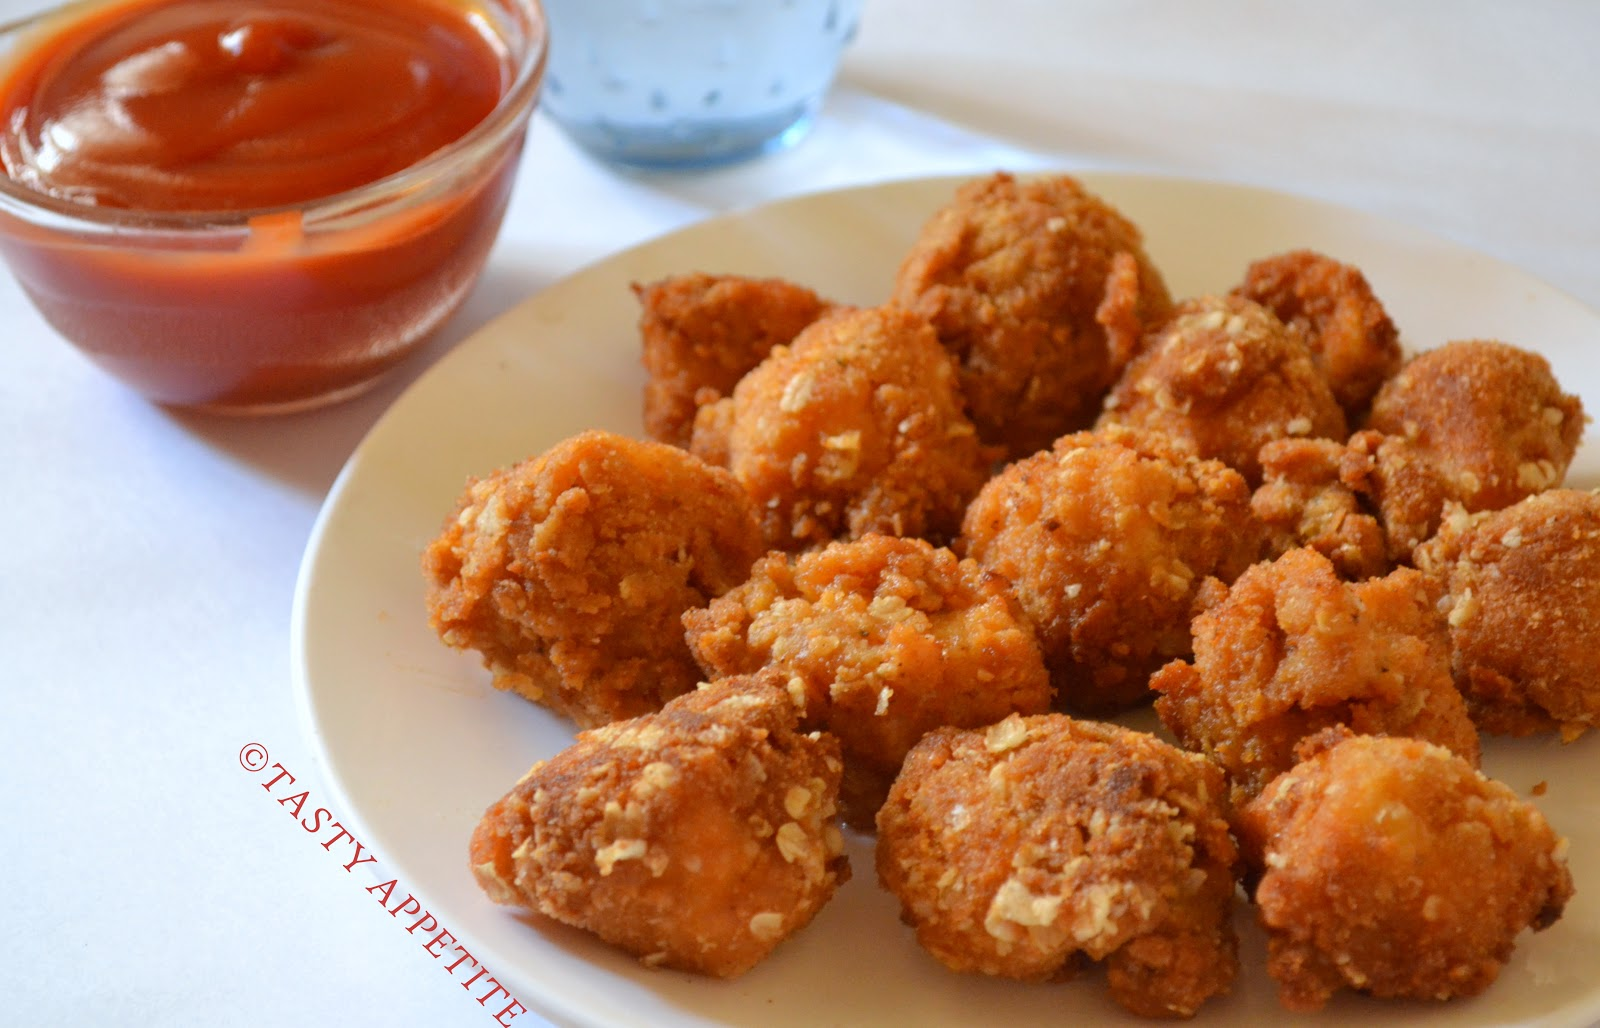 How to make Popcorn Chicken at Home / Easy Step-by-Step Pictures: